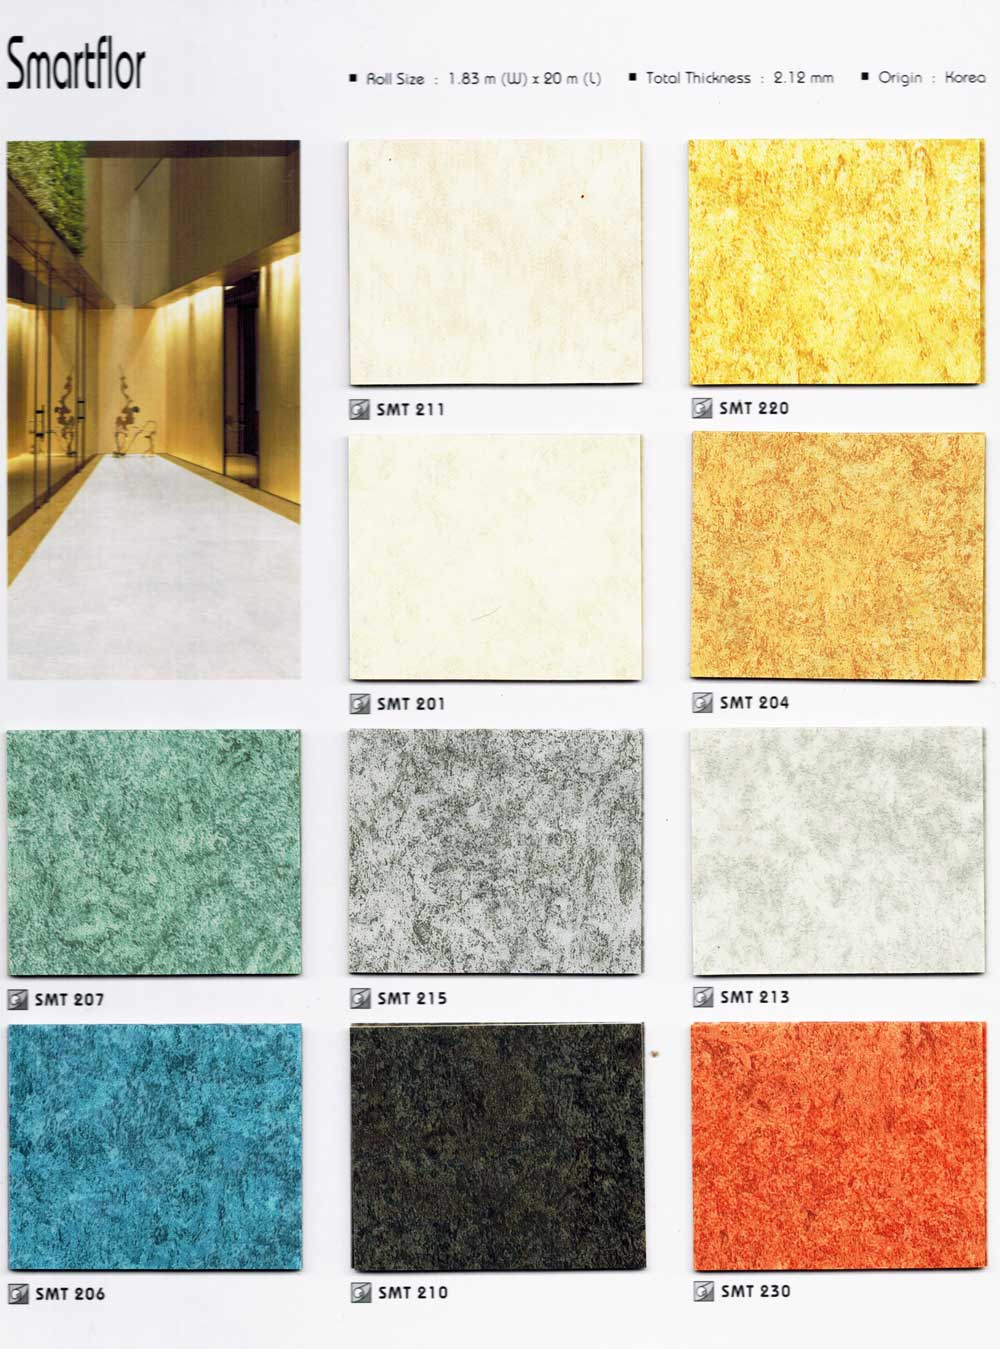 Smartflor Korea Sheet Vinyl Flooring Collection Macau